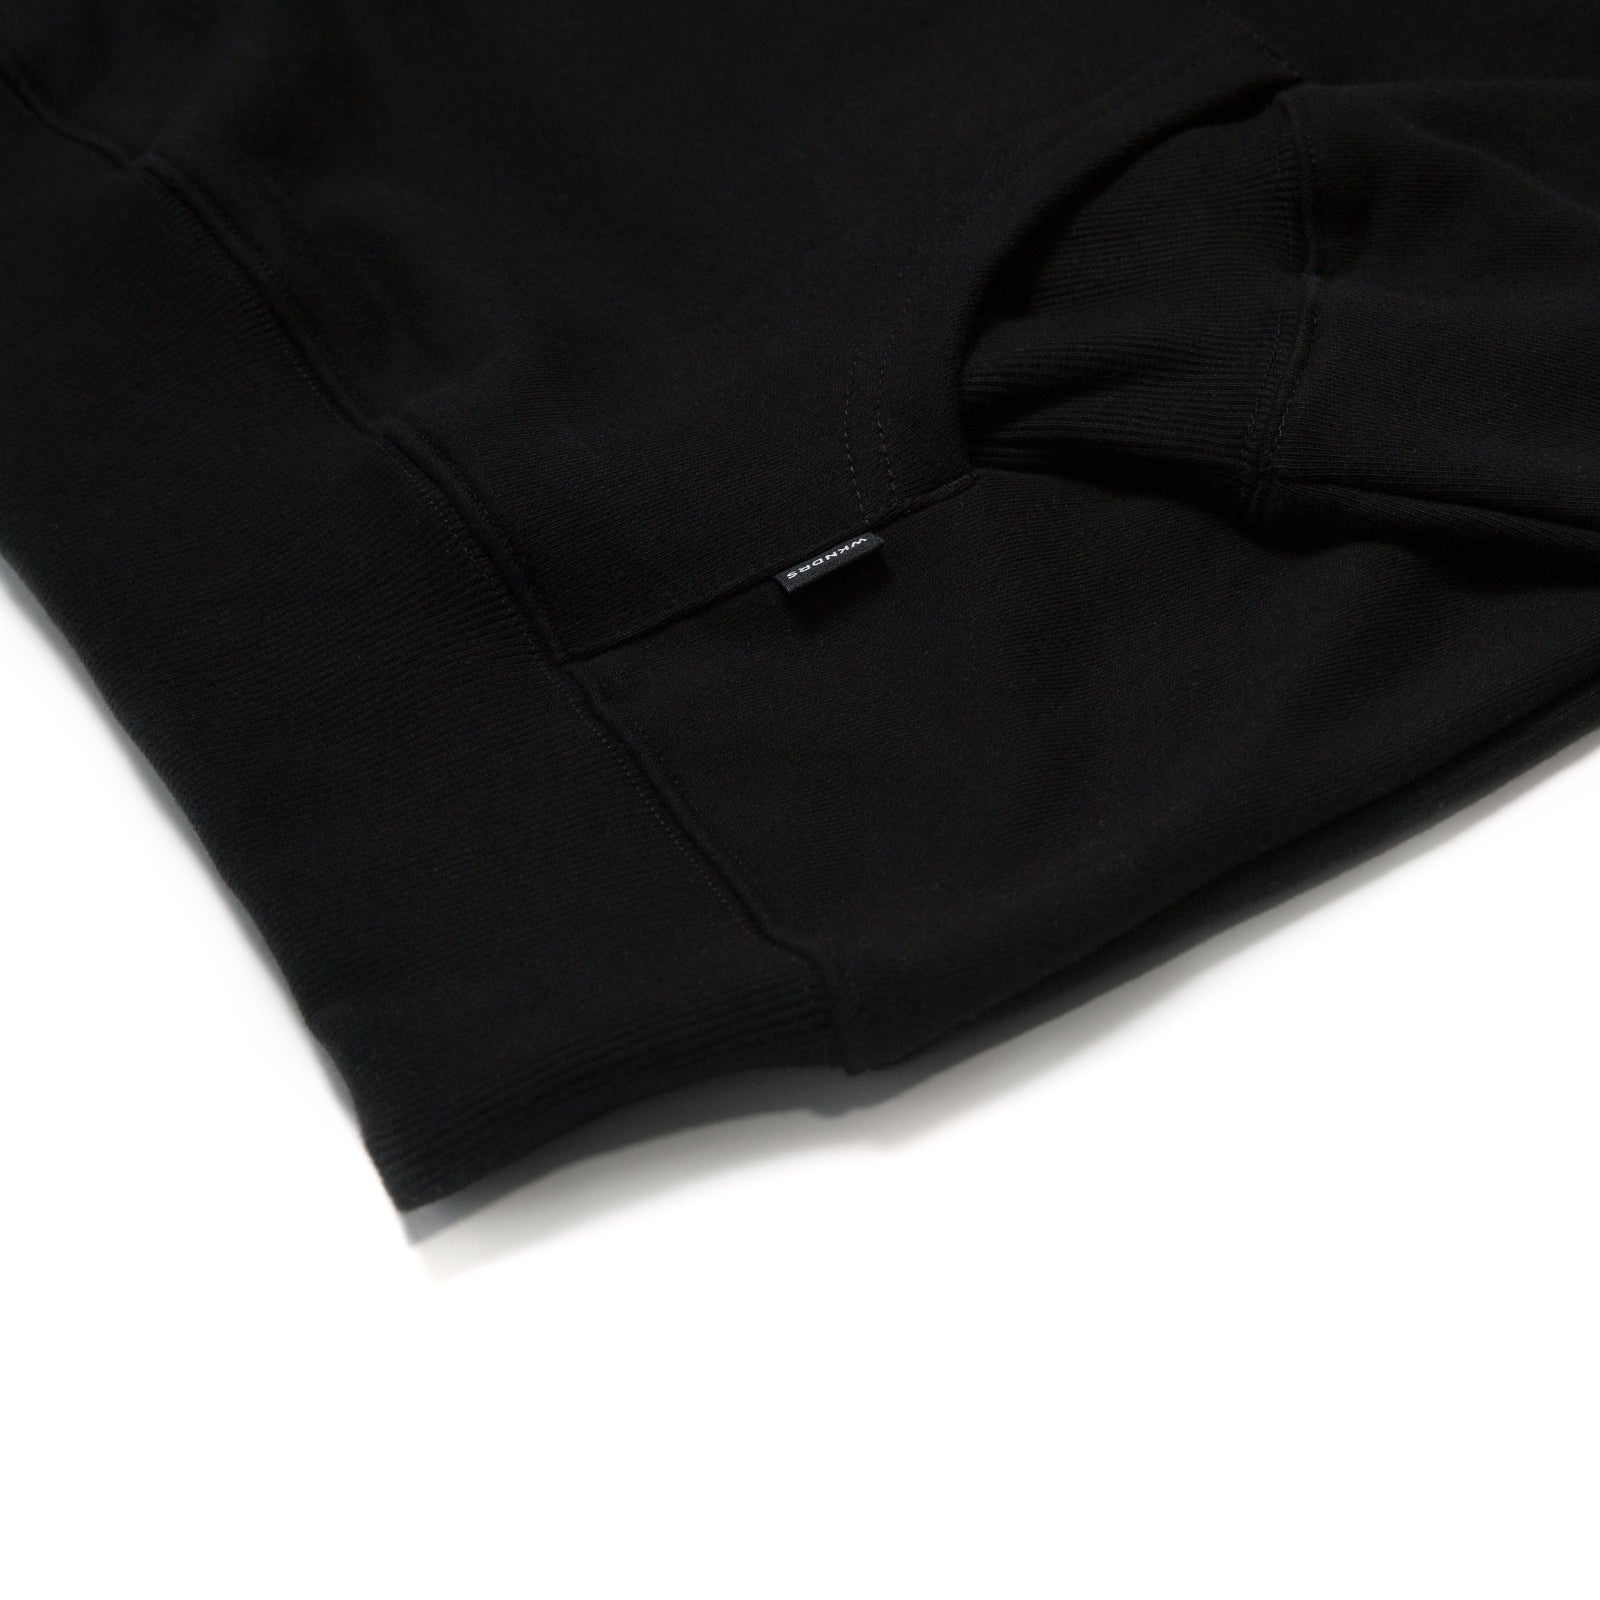 W LOGO NYLON HOODED SWEAT (BLACK)